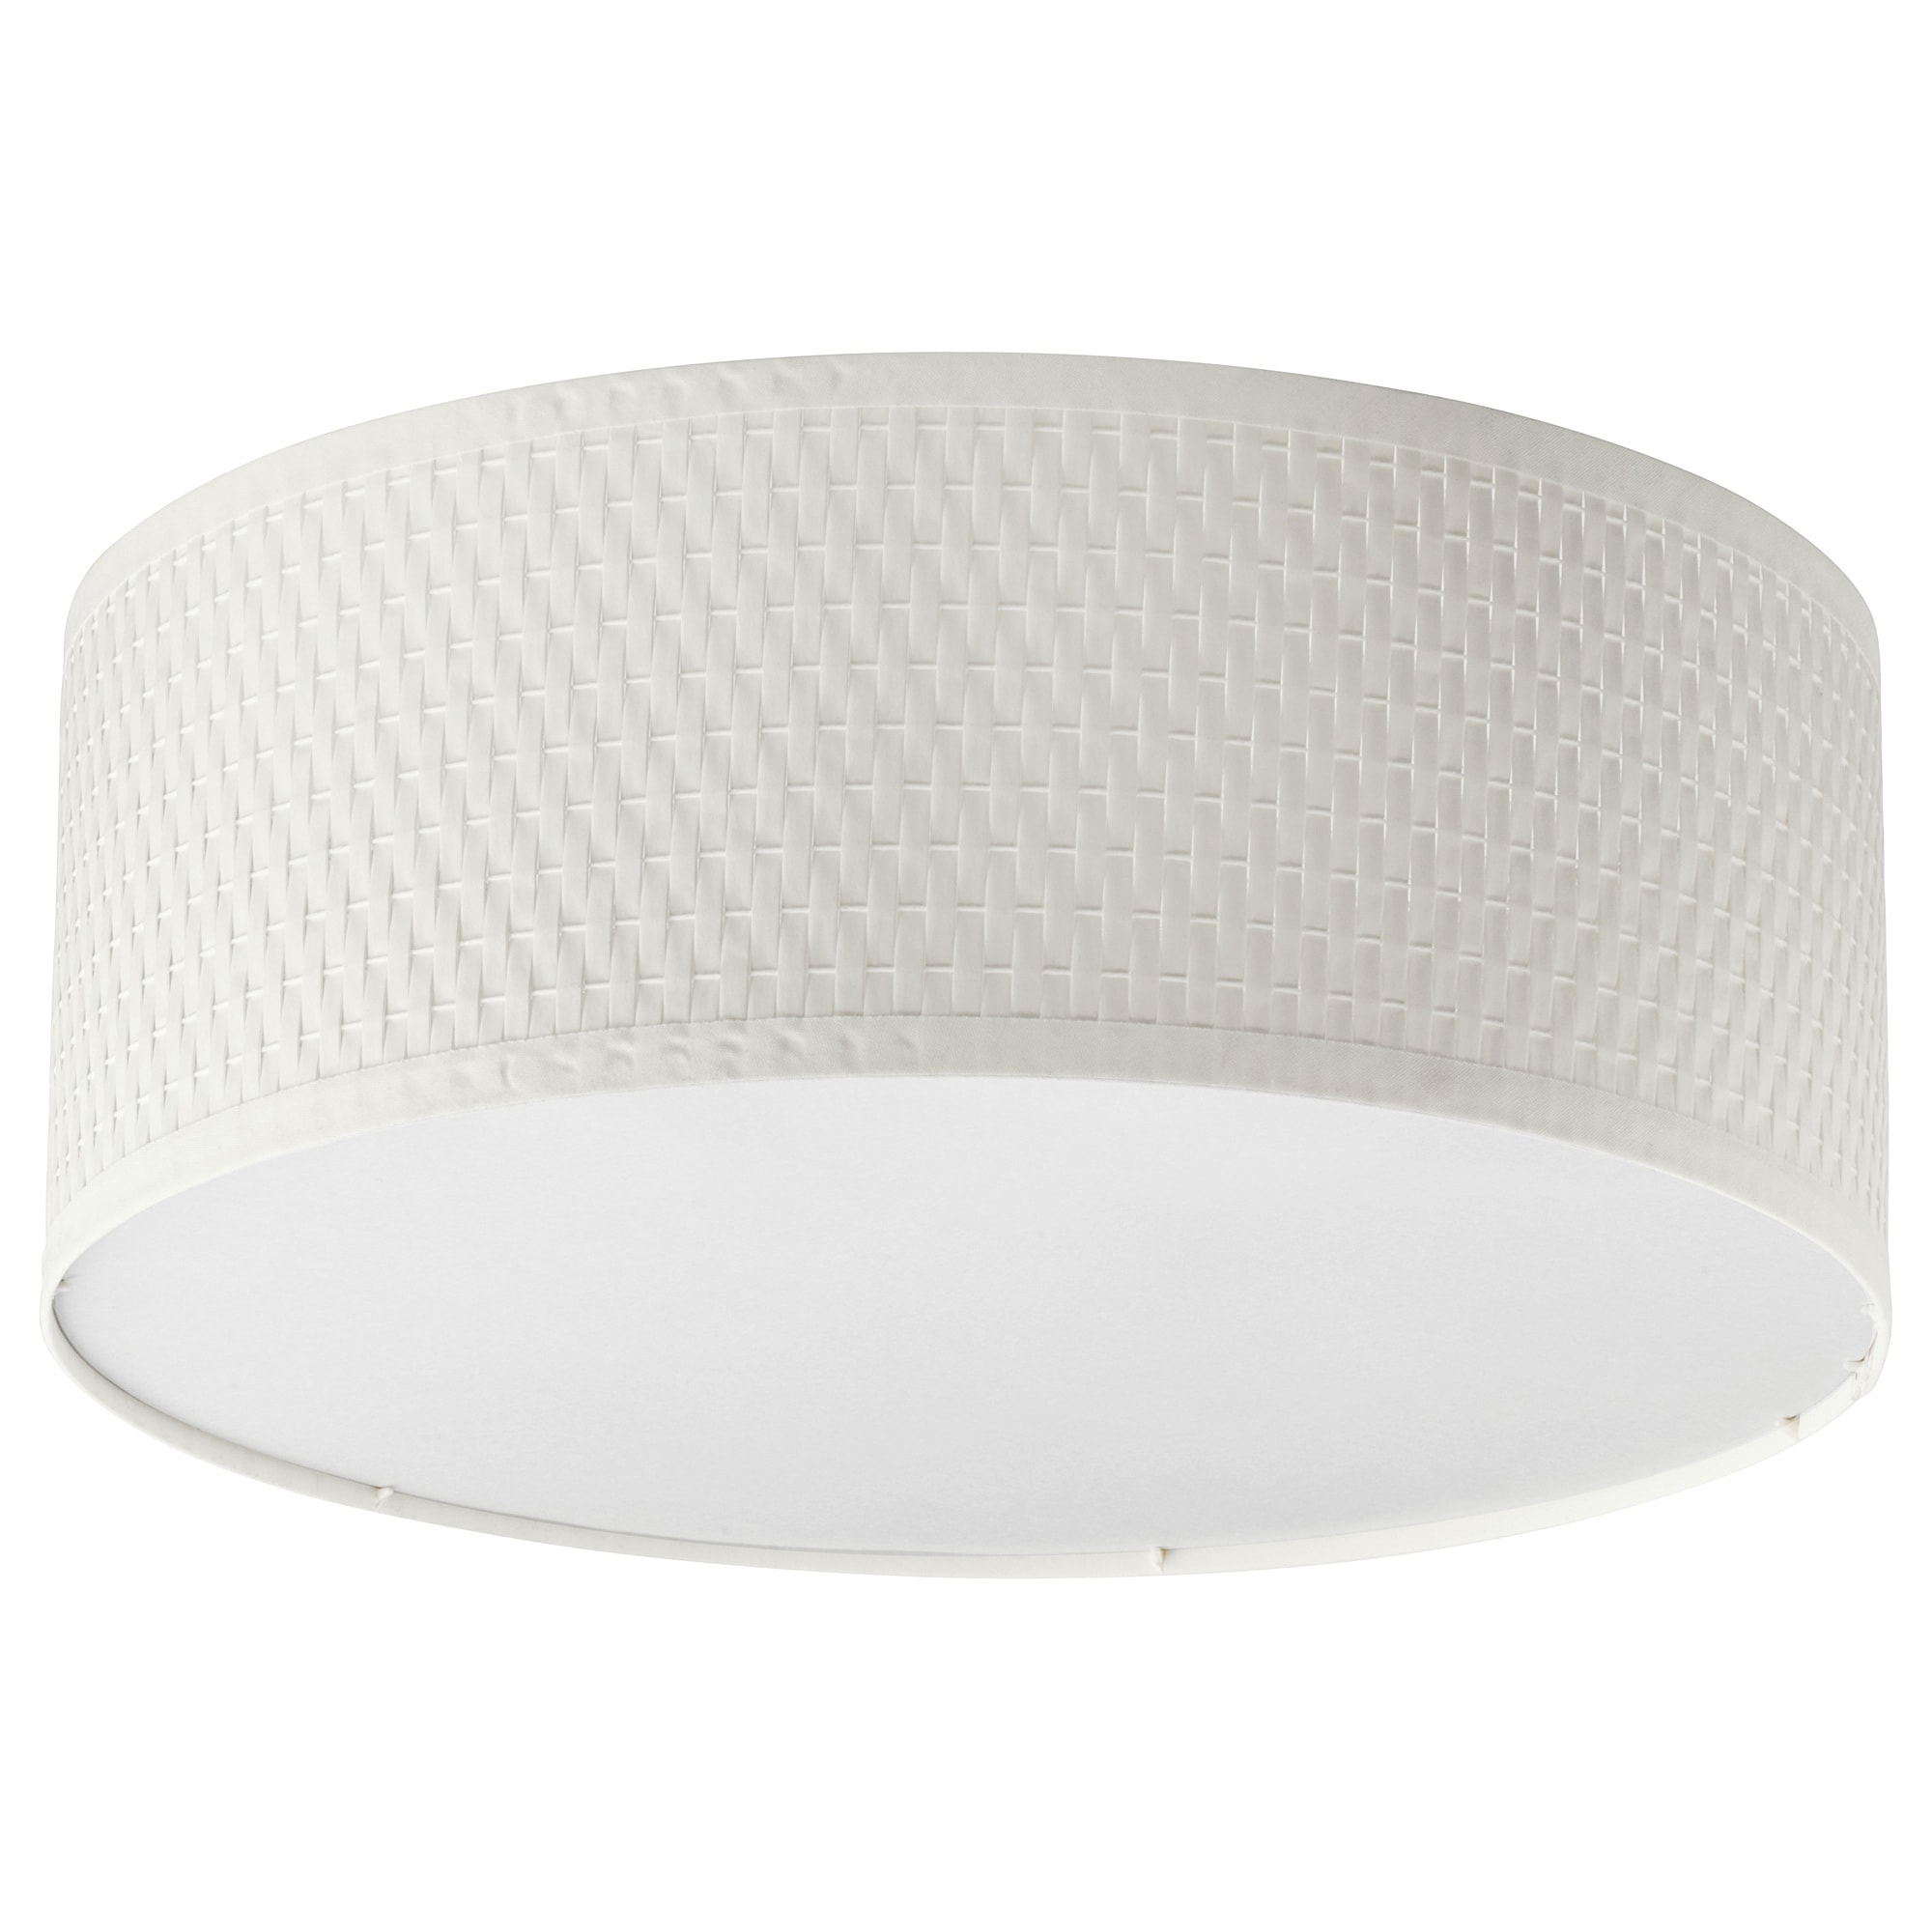 Furniture And Home Furnishings In 2019 Ceiling Lamp